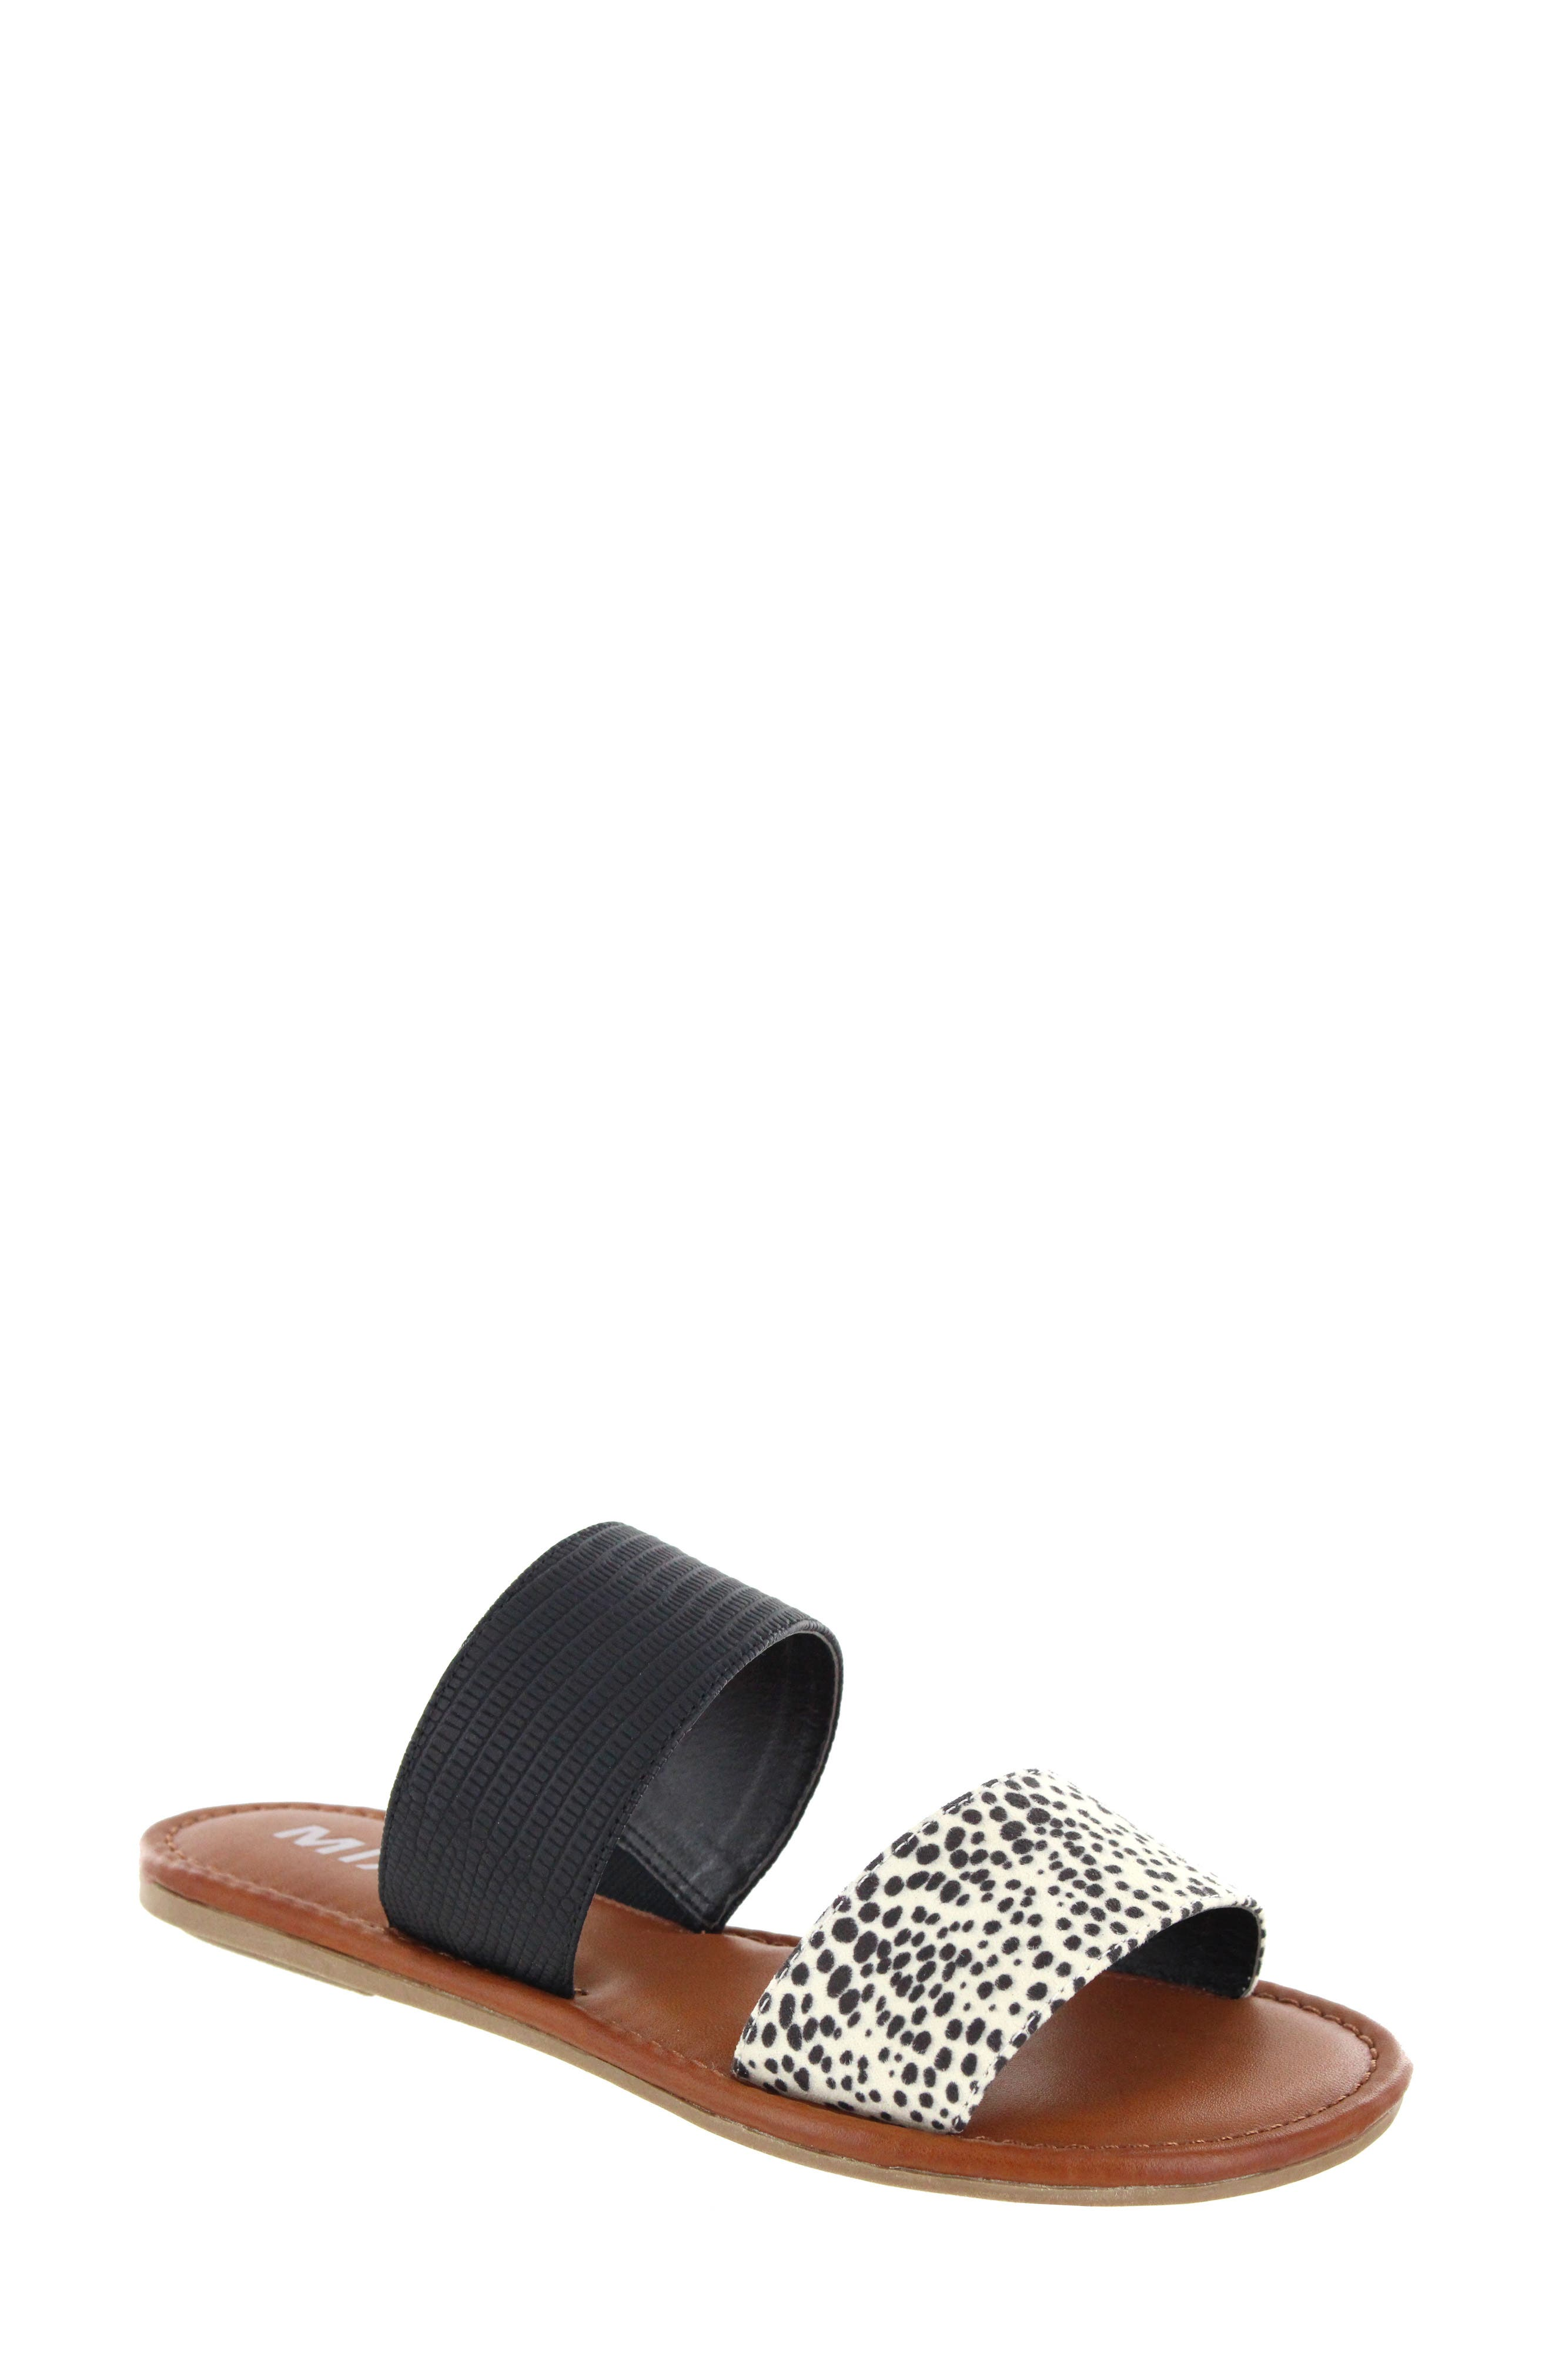 Main Image - MIA Dottie Slide Sandal (Women)